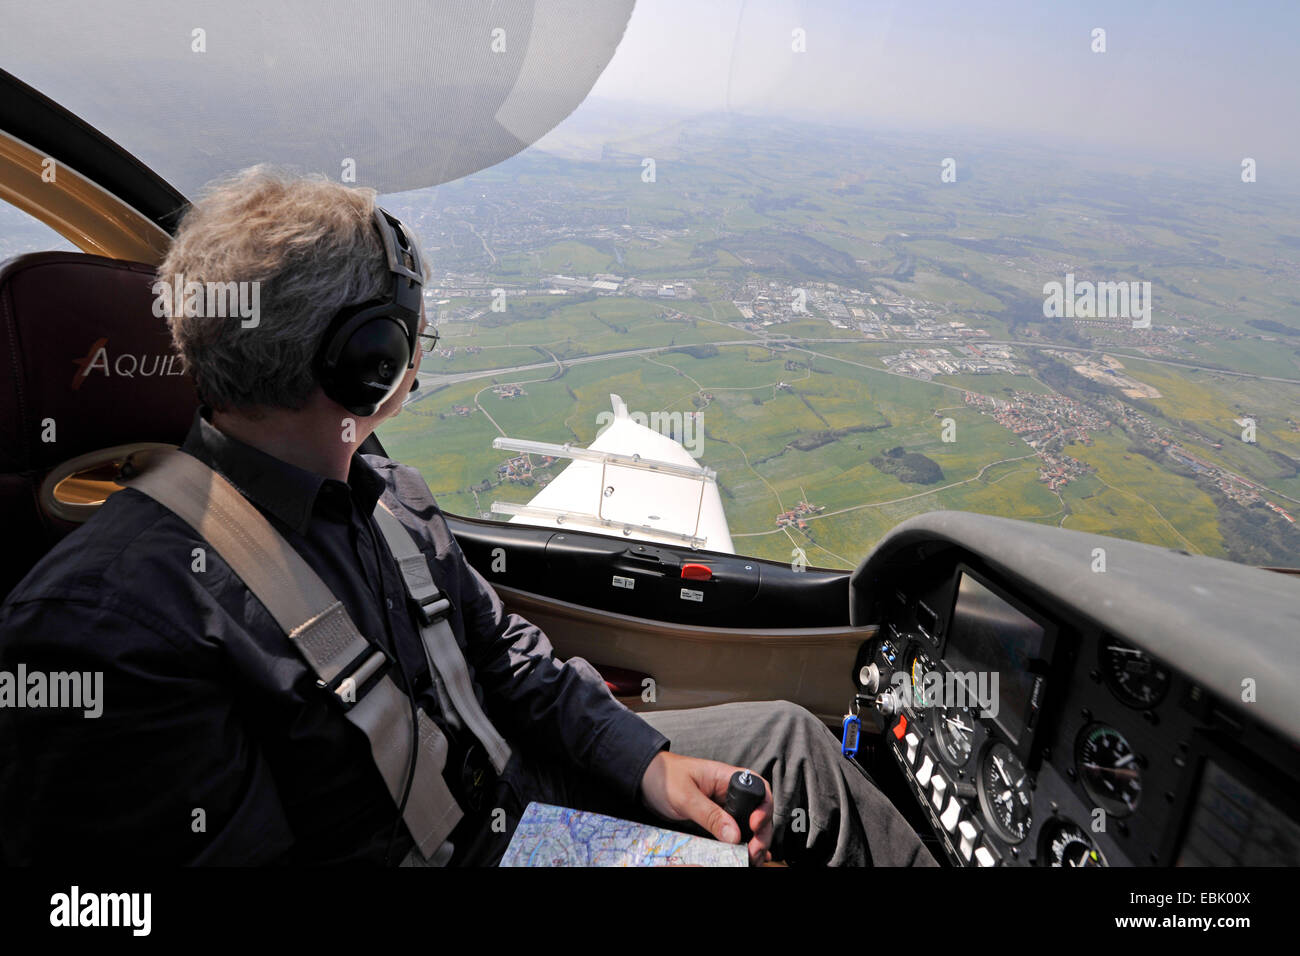 pilot in the glass cockpit of the small aircraft D-ESOA Aquila A210 AT01, Germany - Stock Image